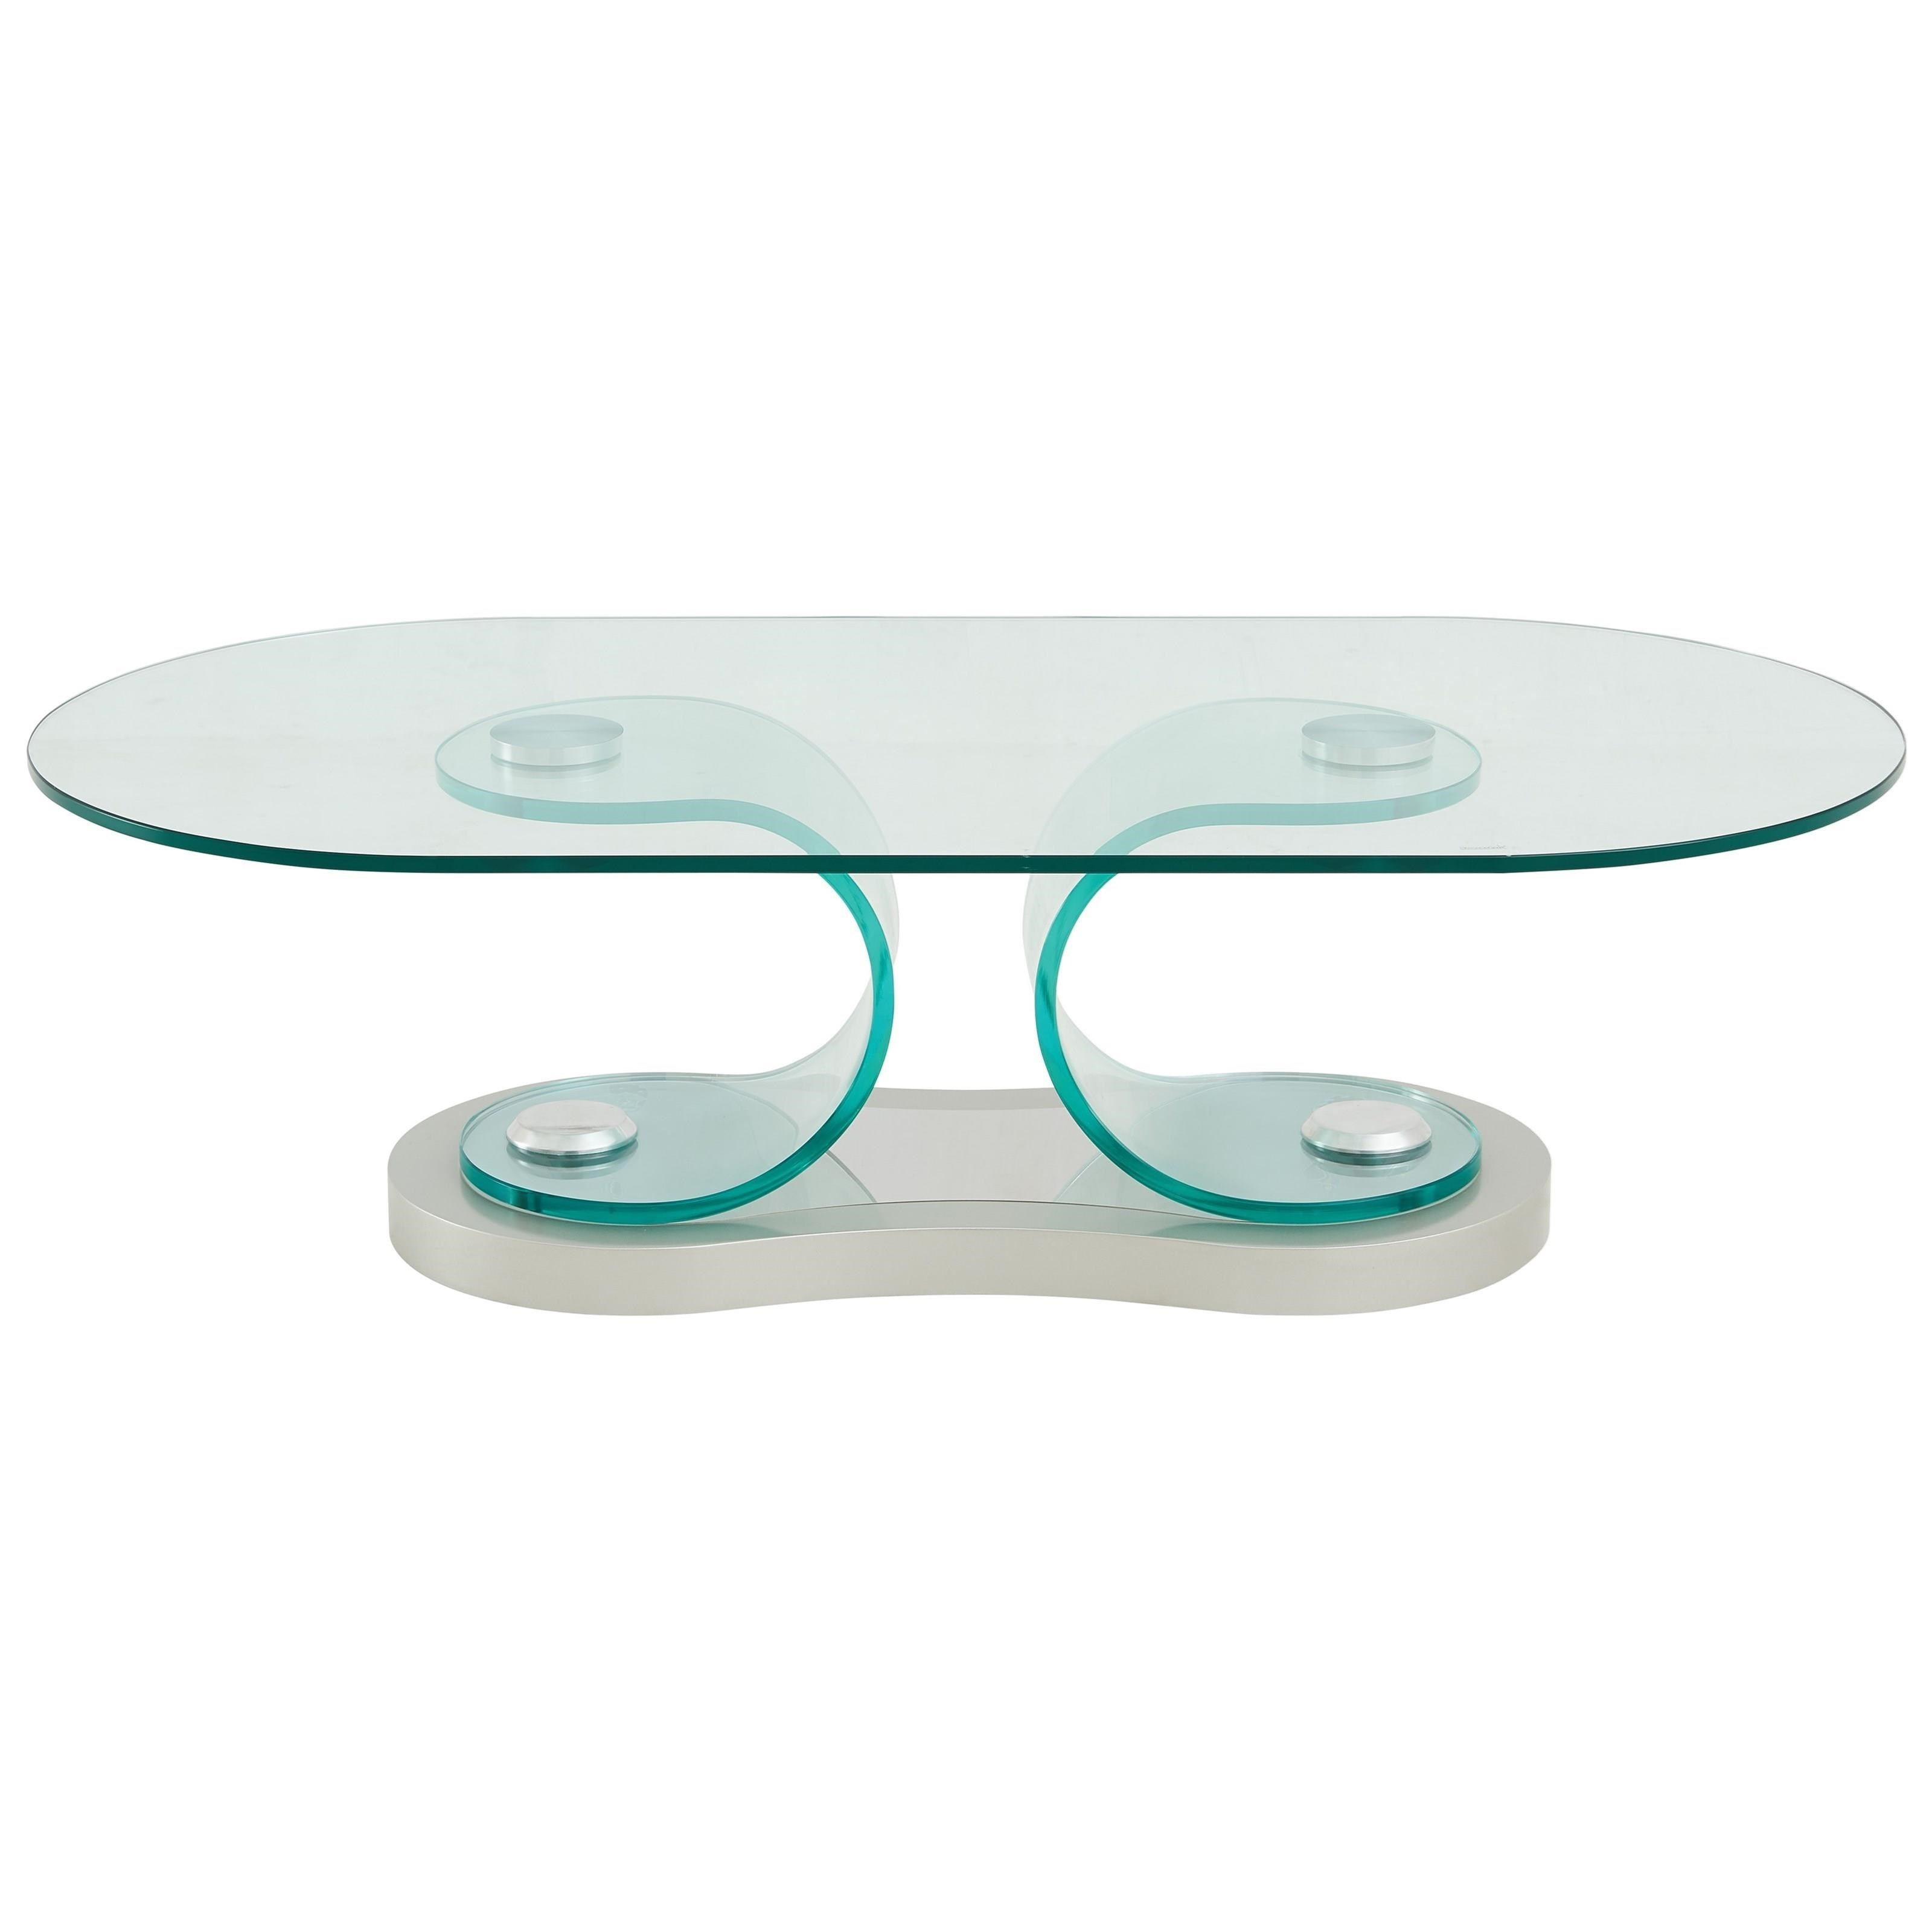 1713 Coffee Table by Global Furniture at Dream Home Interiors